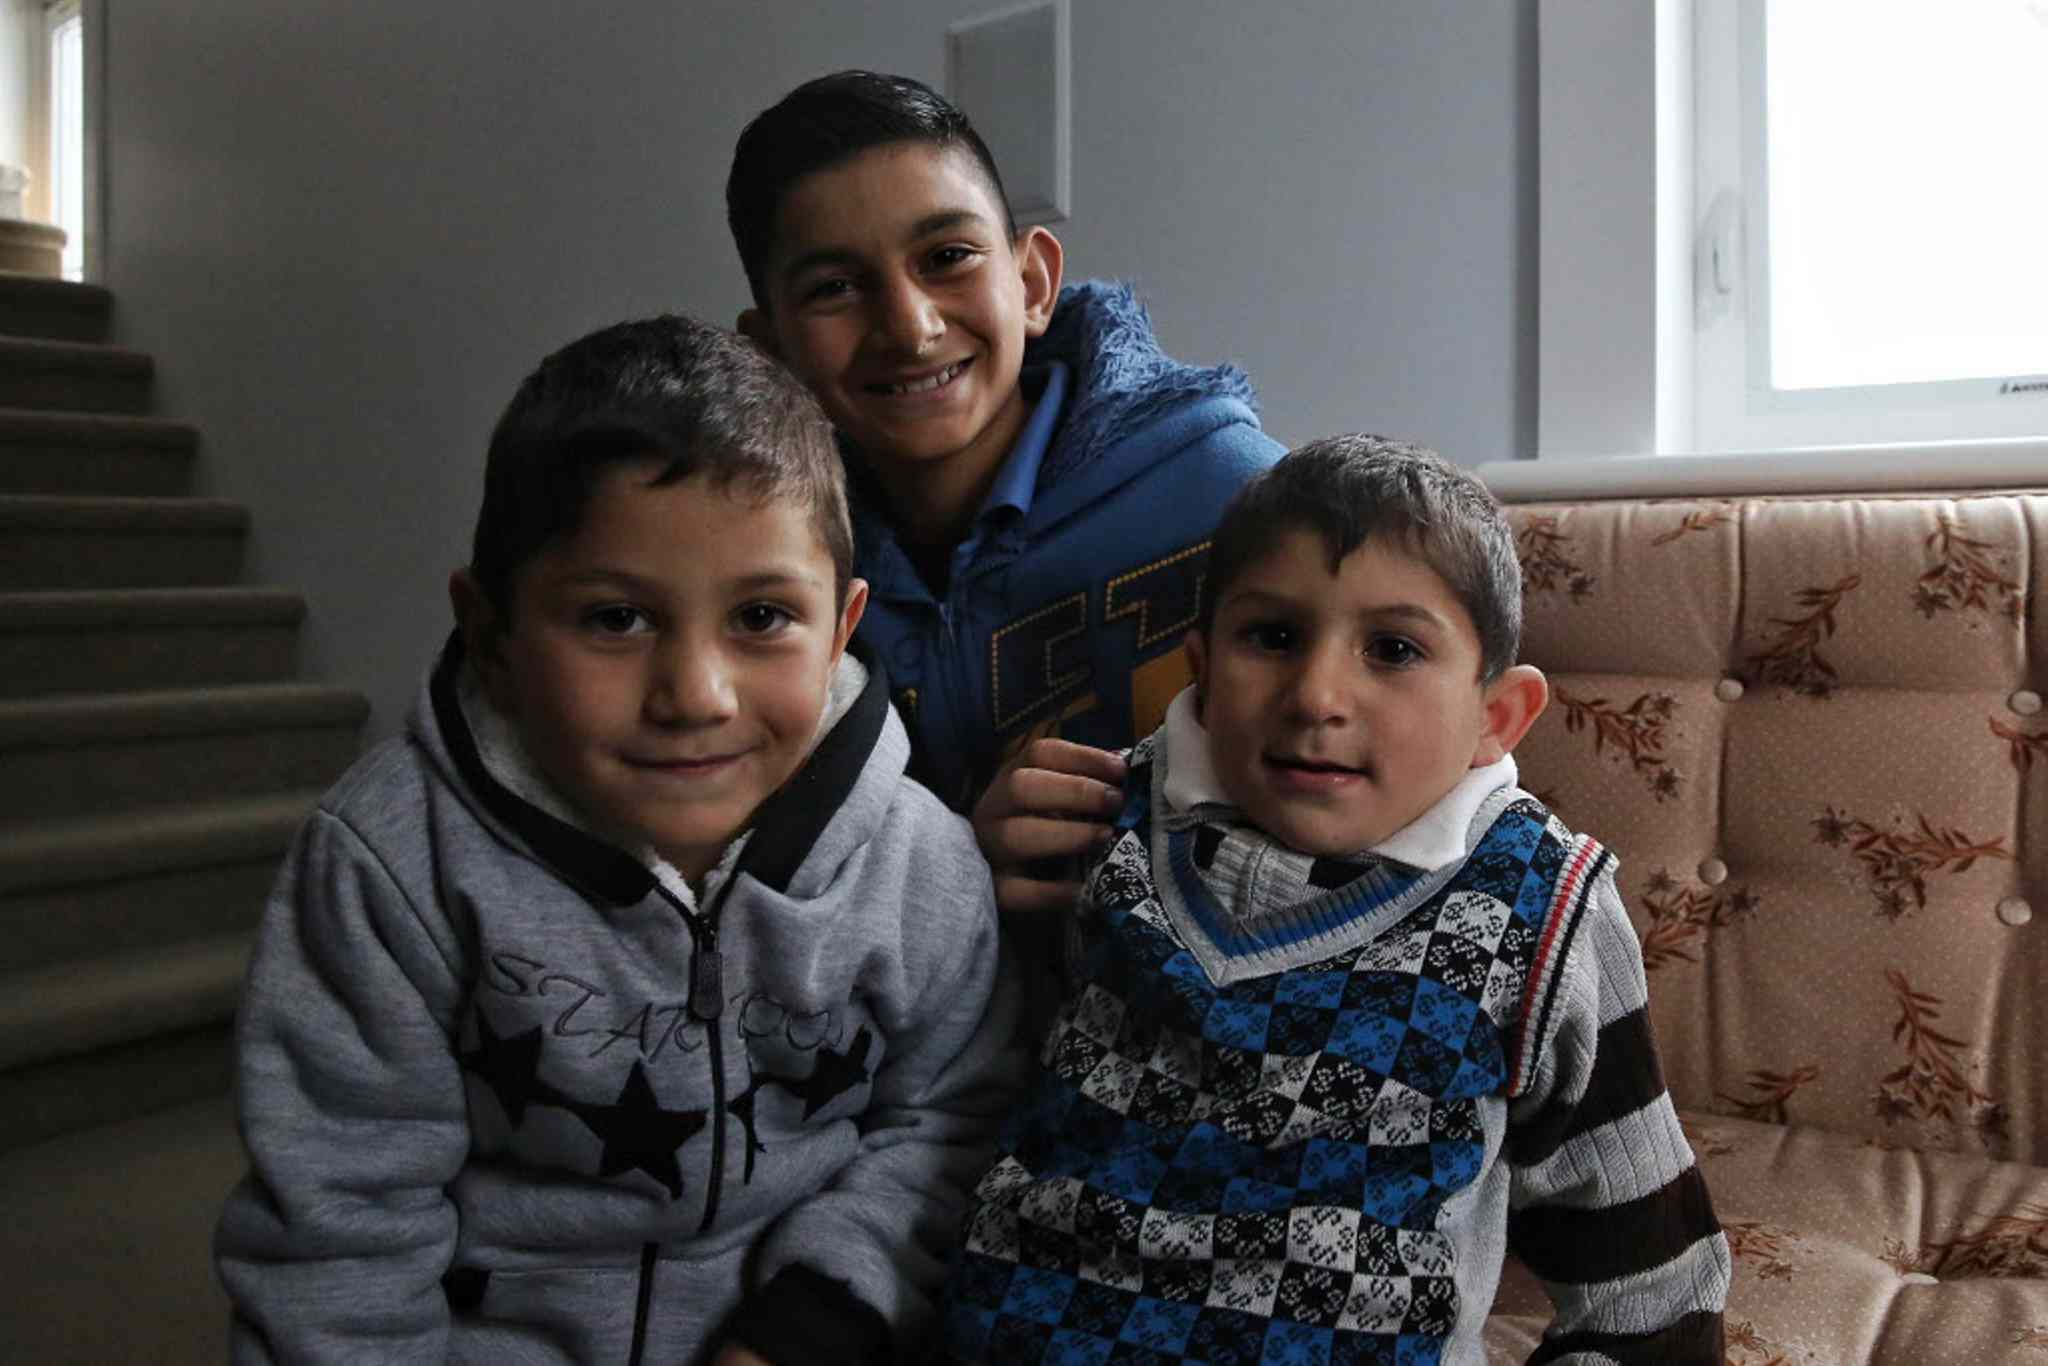 Ahmad Daas and his wife Ahlam Dib were welcomed to Altona along with their seven children, including (from left)  Majed, 4, Mohamad, 12, and Joad, 3.